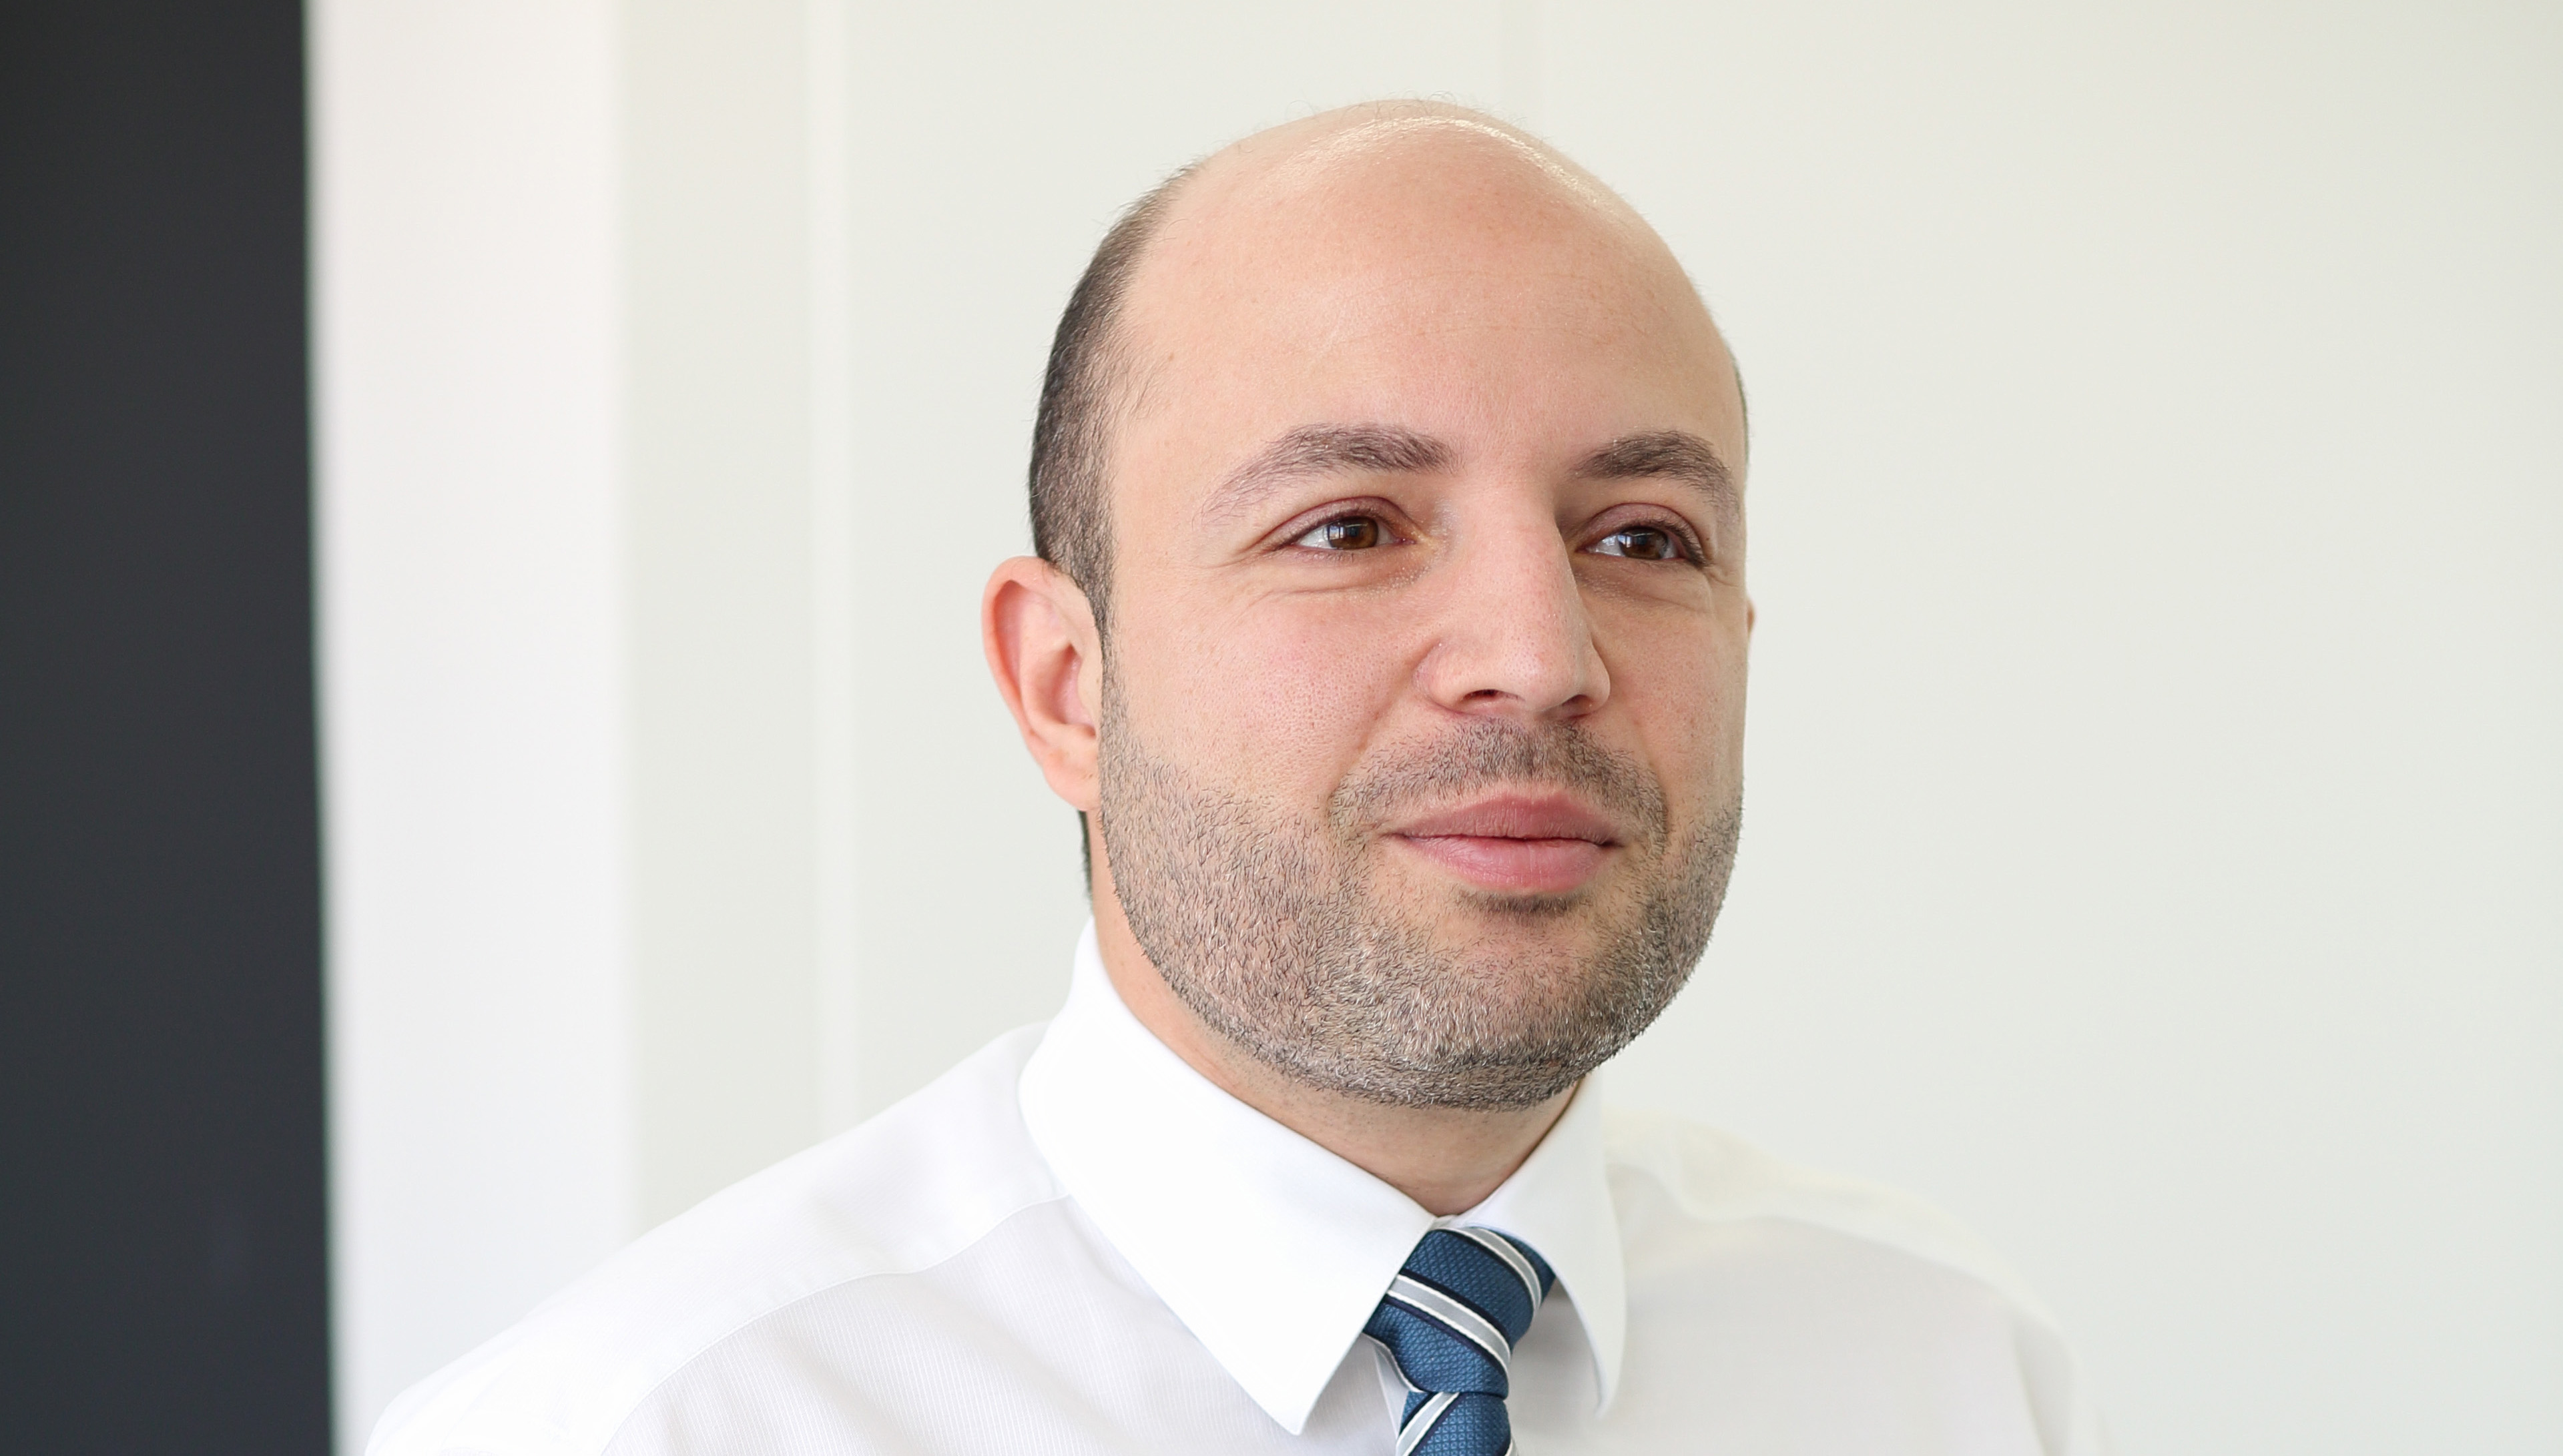 Mouhamad Rabah